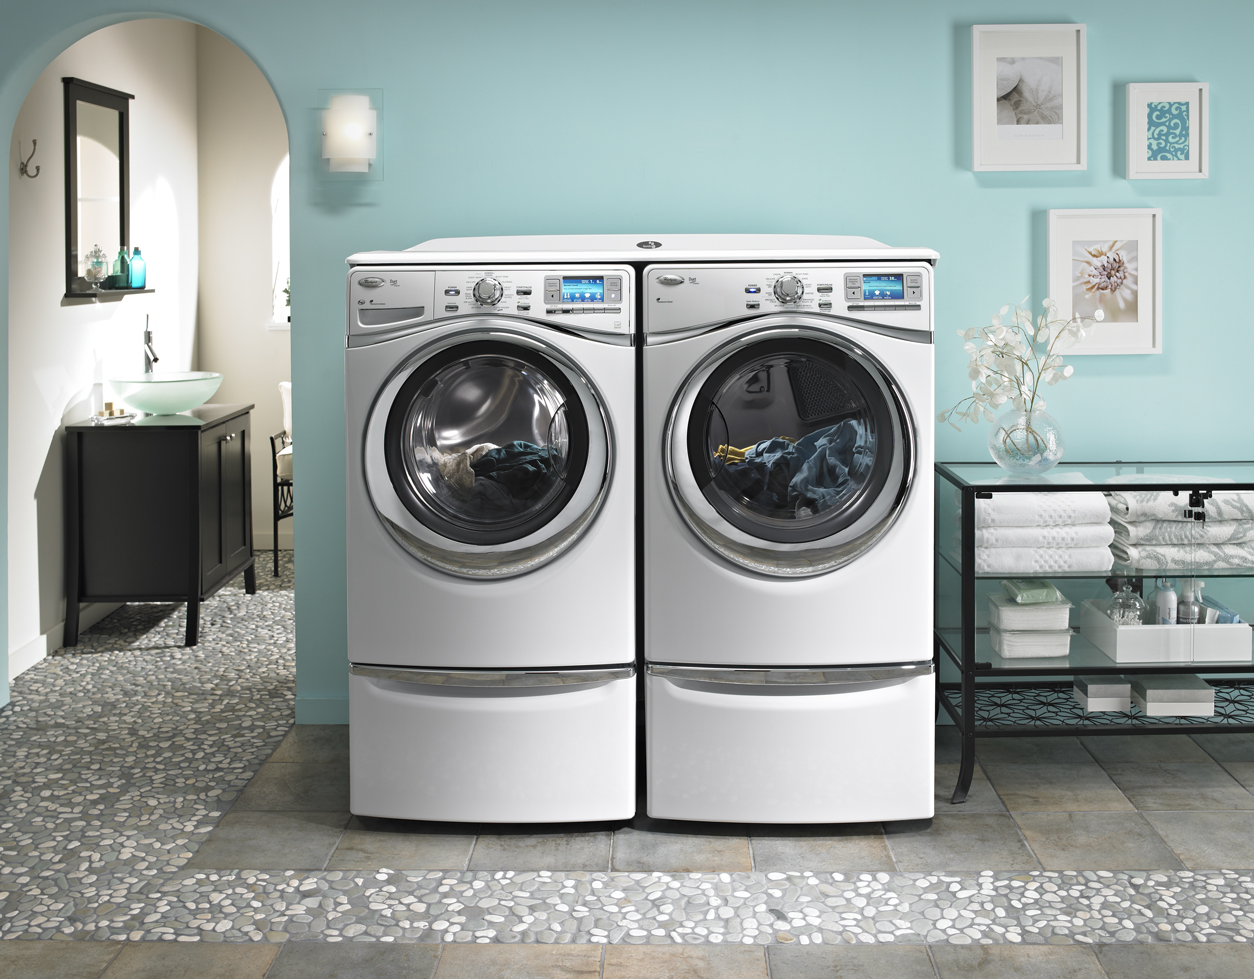 A Little About My Whirlpool Washer And Dryer Duet Mom 39 S Blog